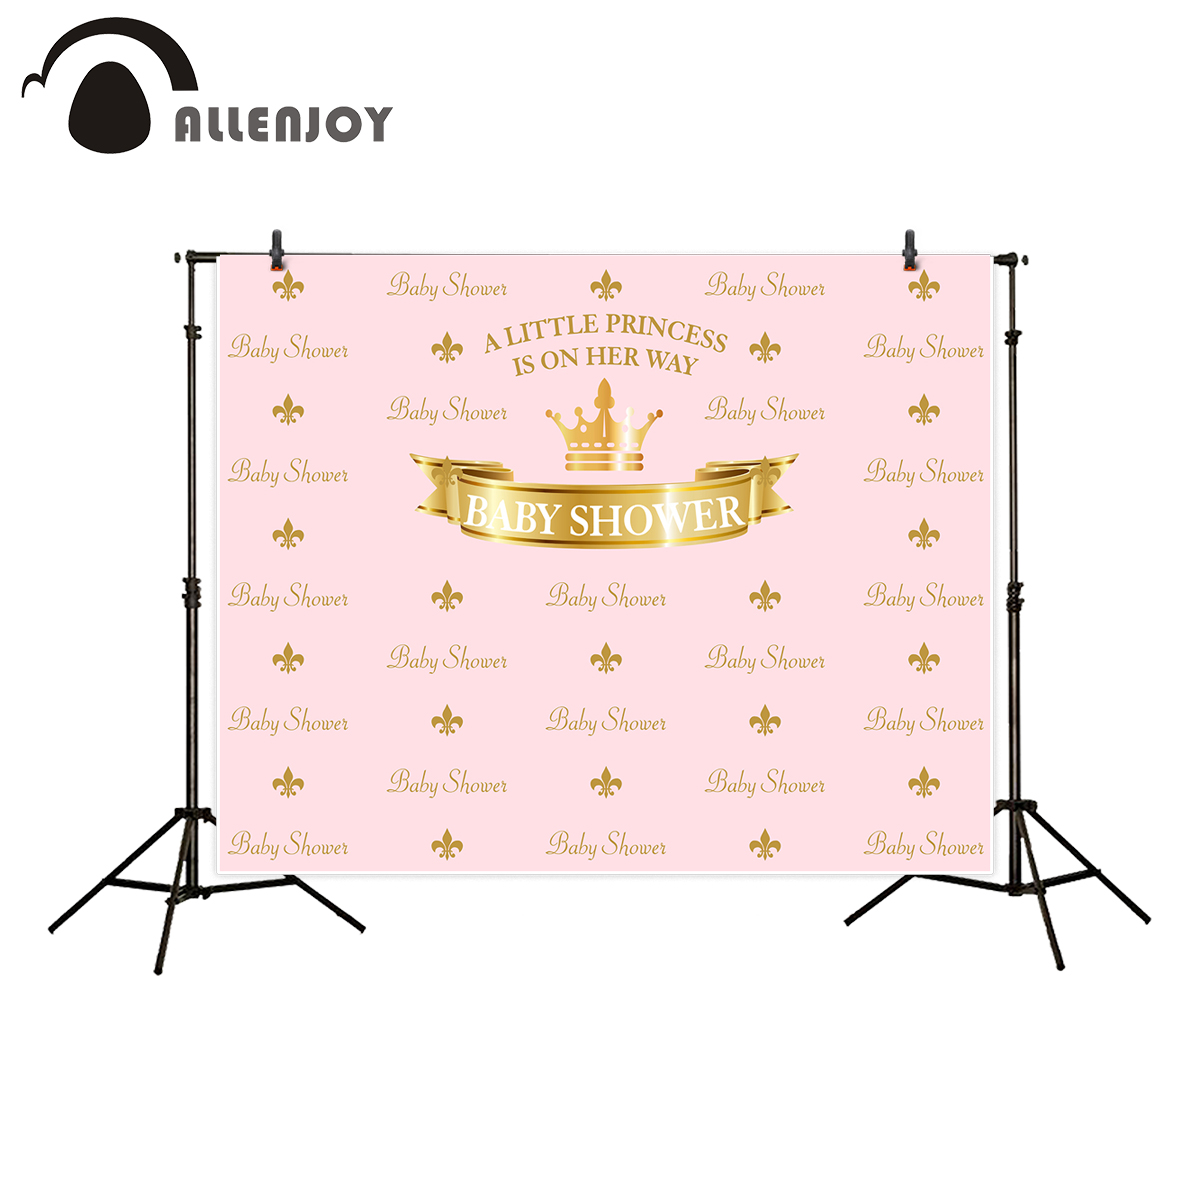 Allenjoy pink princess crown background for photography birthday step and reapeat banner baby shower backdrop photo studio photography background baby shower step and repeat allenjoy backdrop custom made any size any style